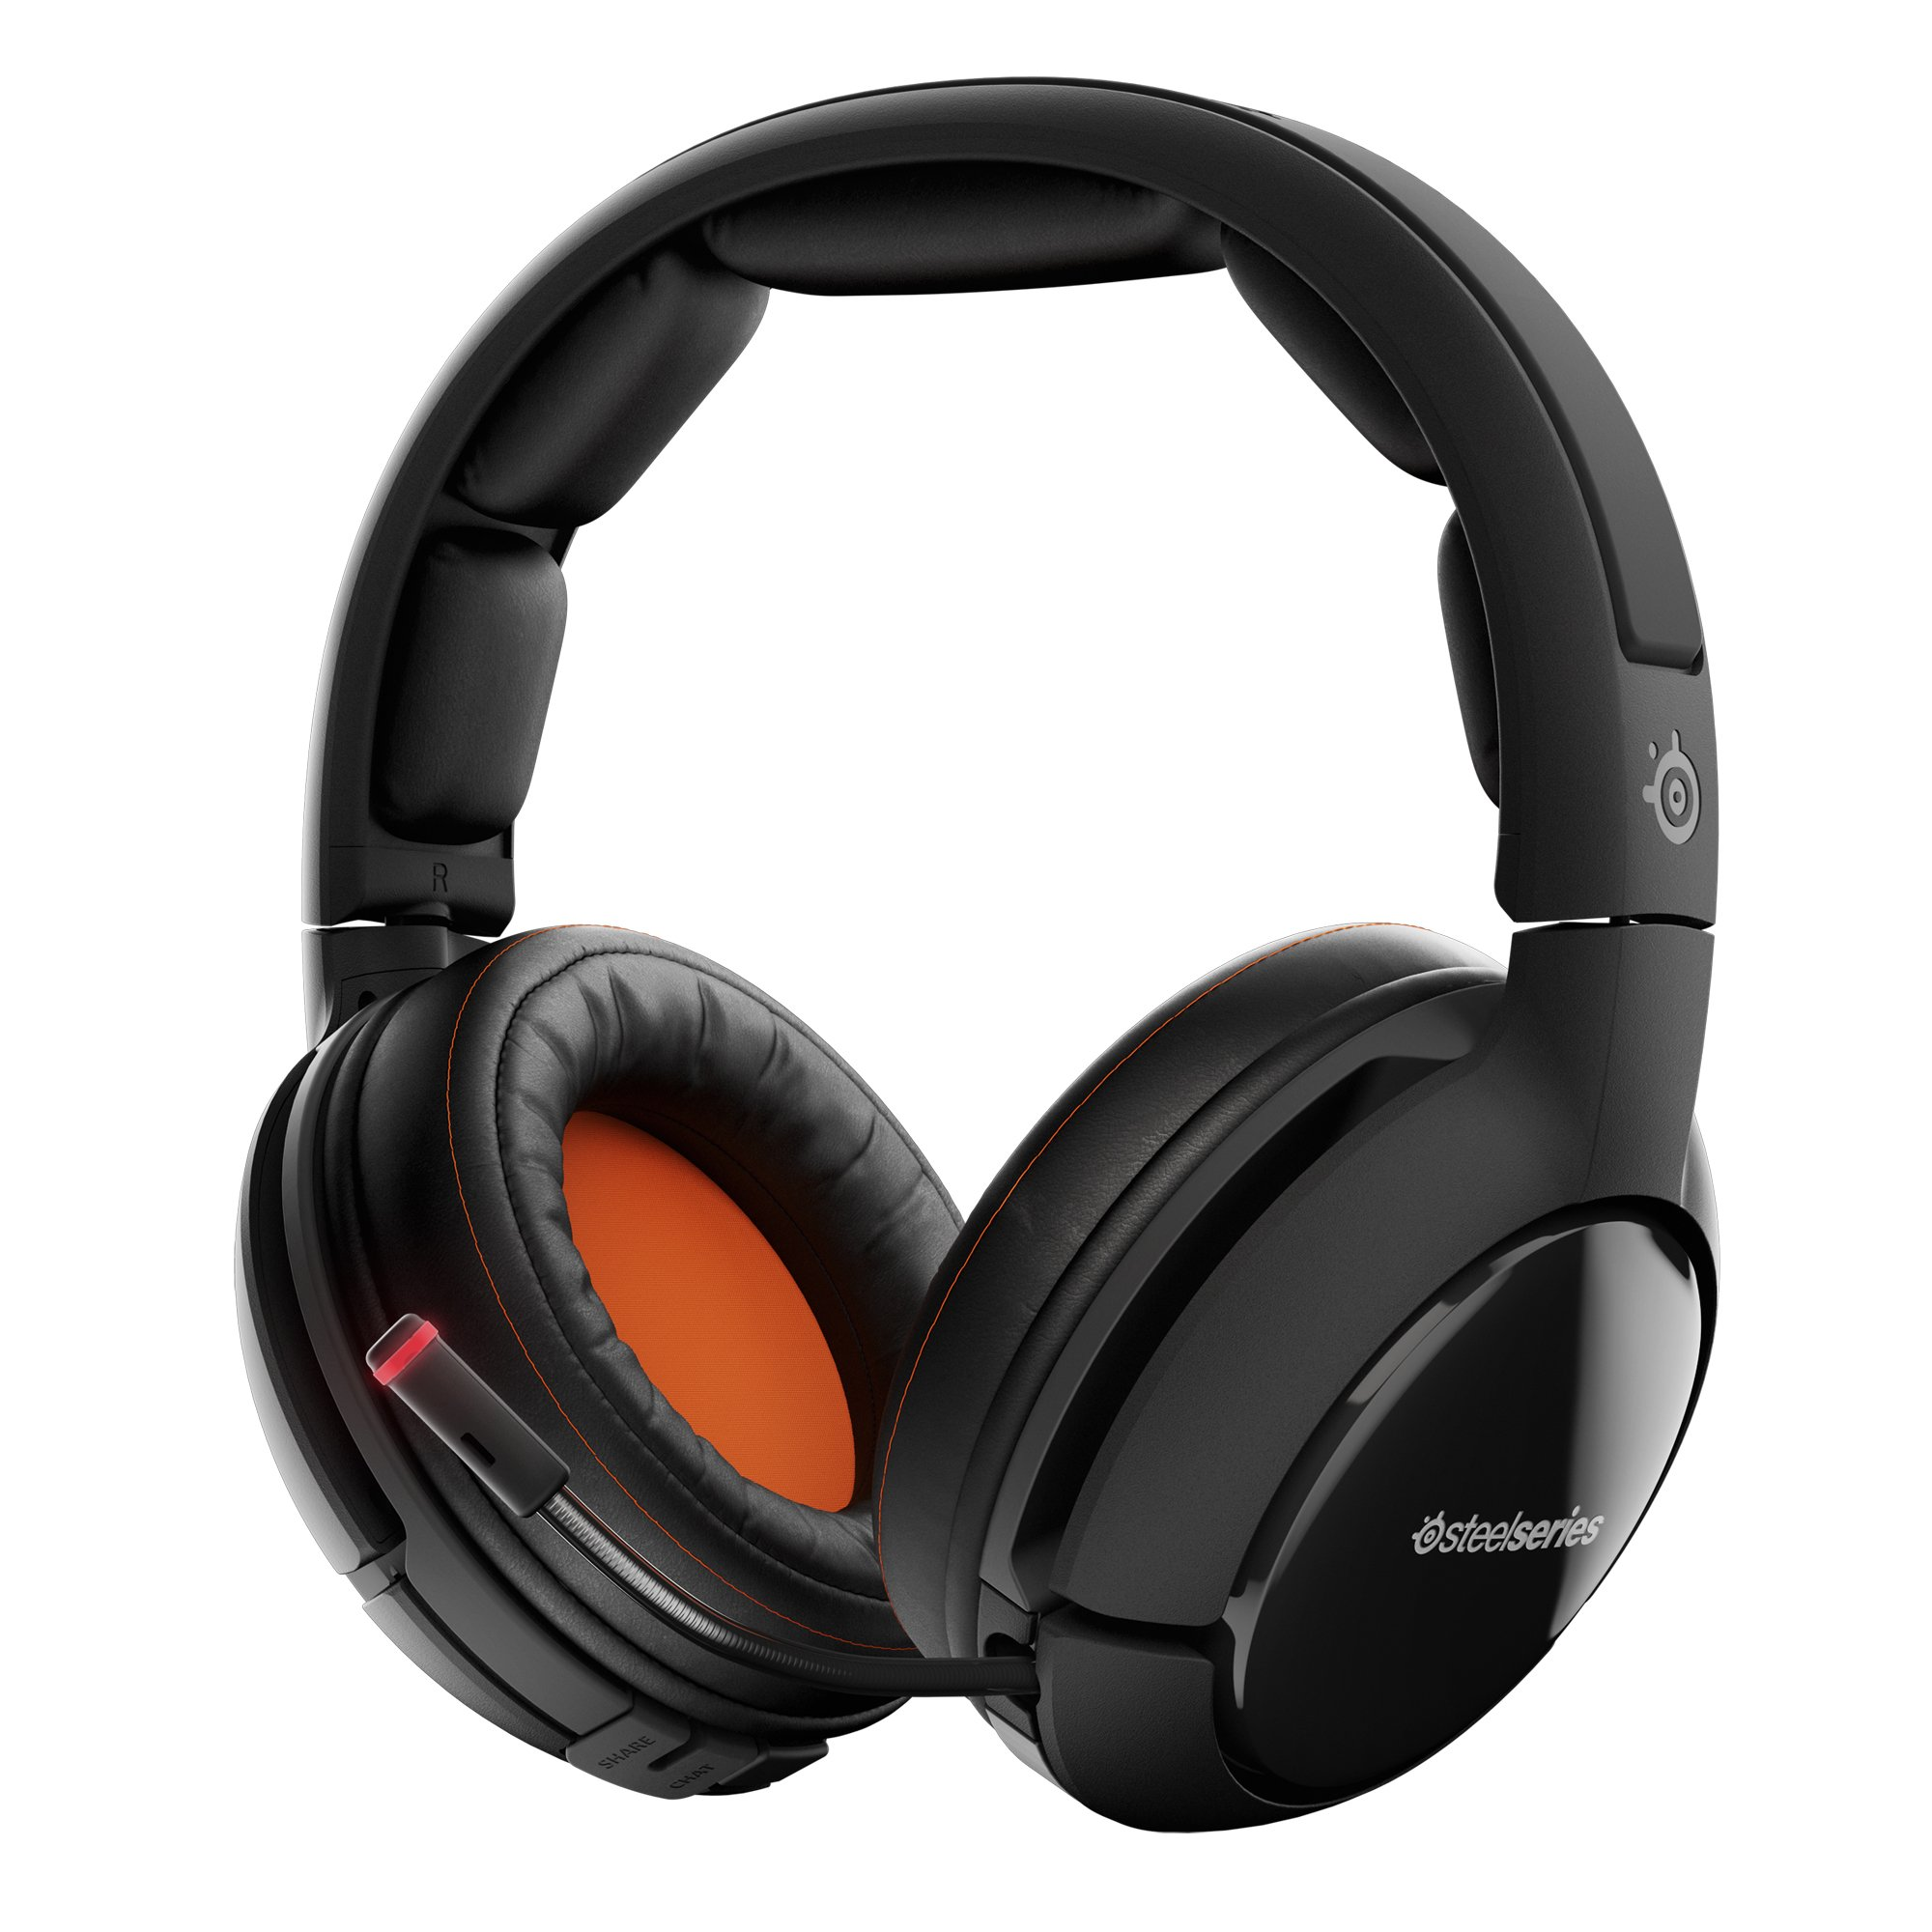 SteelSeries Siberia 800 Lag-Free Wireless Gaming Headset with OLED Transmitter and Dolby 7.1 Surround Sound by SteelSeries